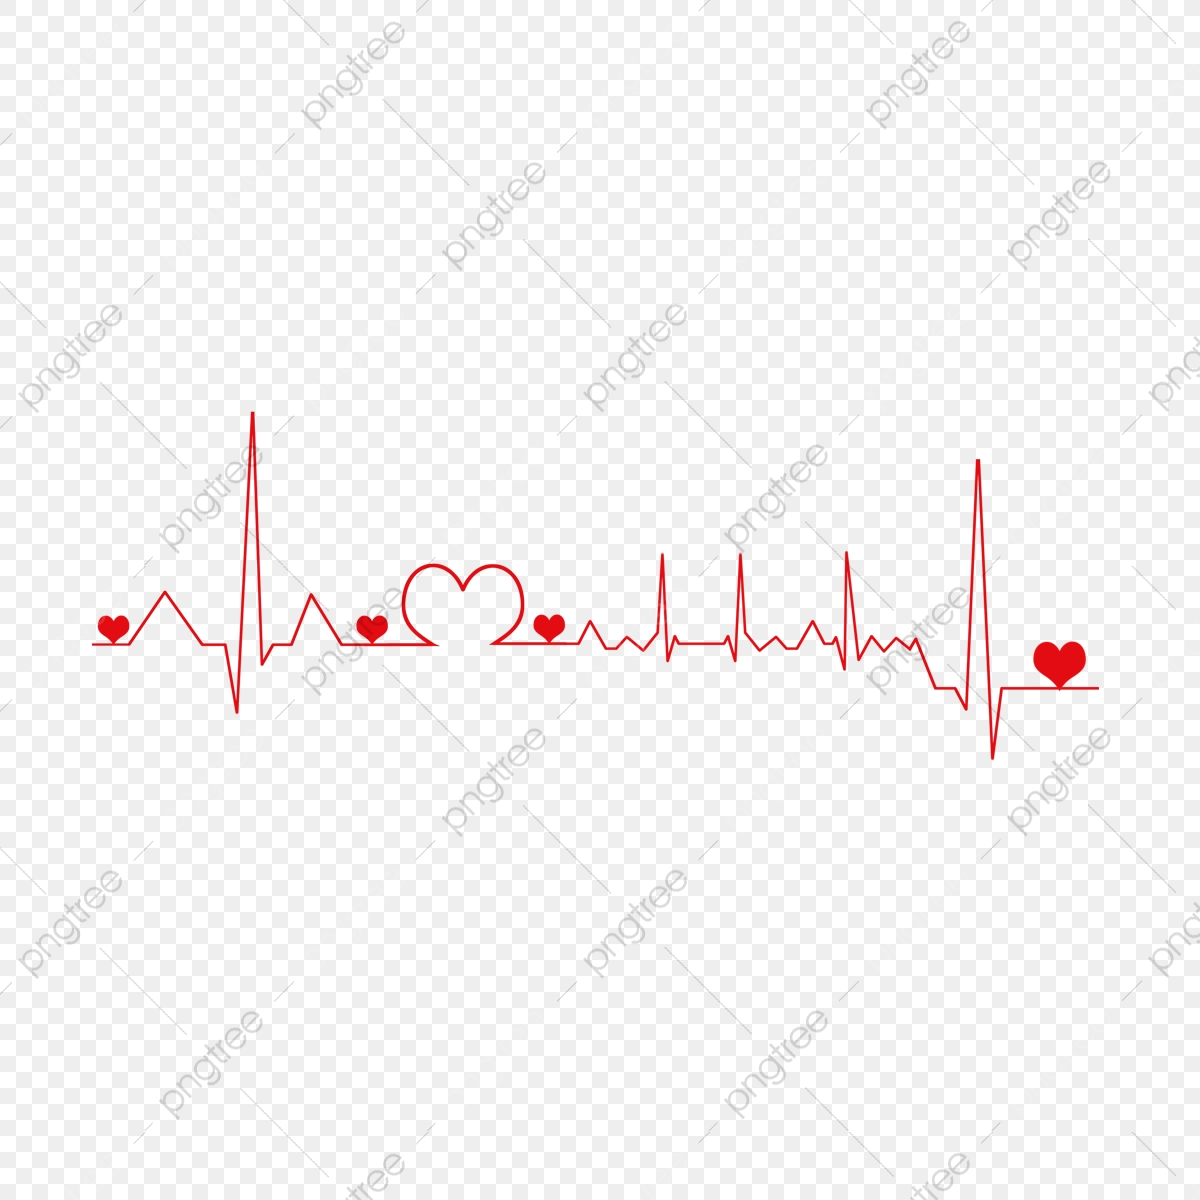 pngtree hand drawn cartoon heartbeat series element painting cute line creative png image 5489644